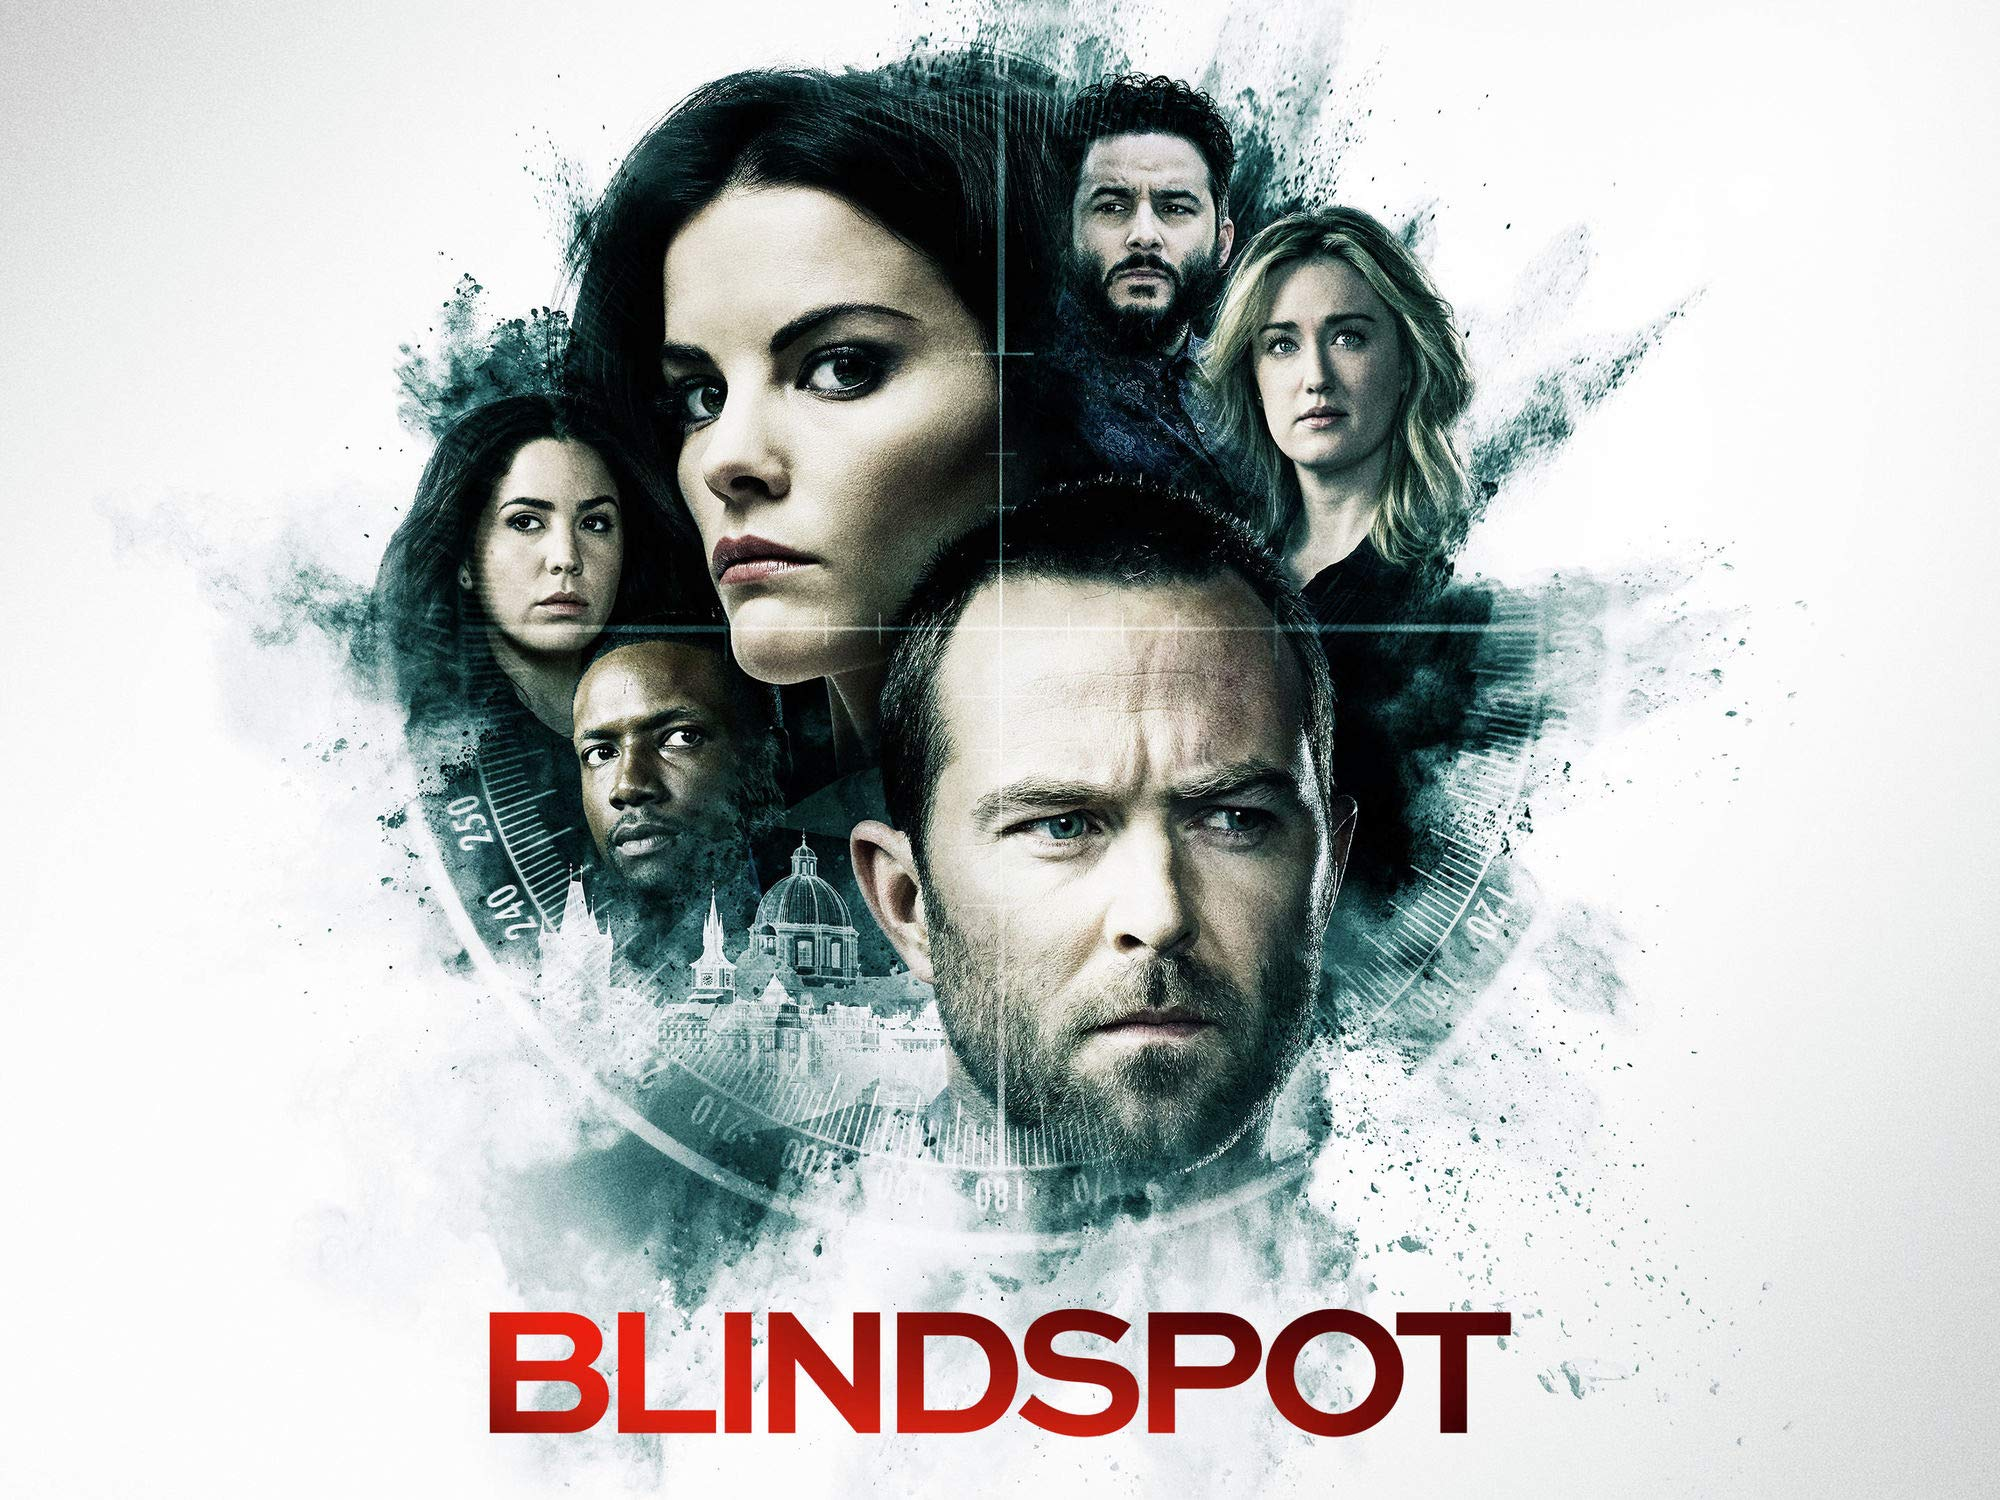 Blindspot Season 5 Episode 3 (S05 E03) Subtitle (English SRT) Download